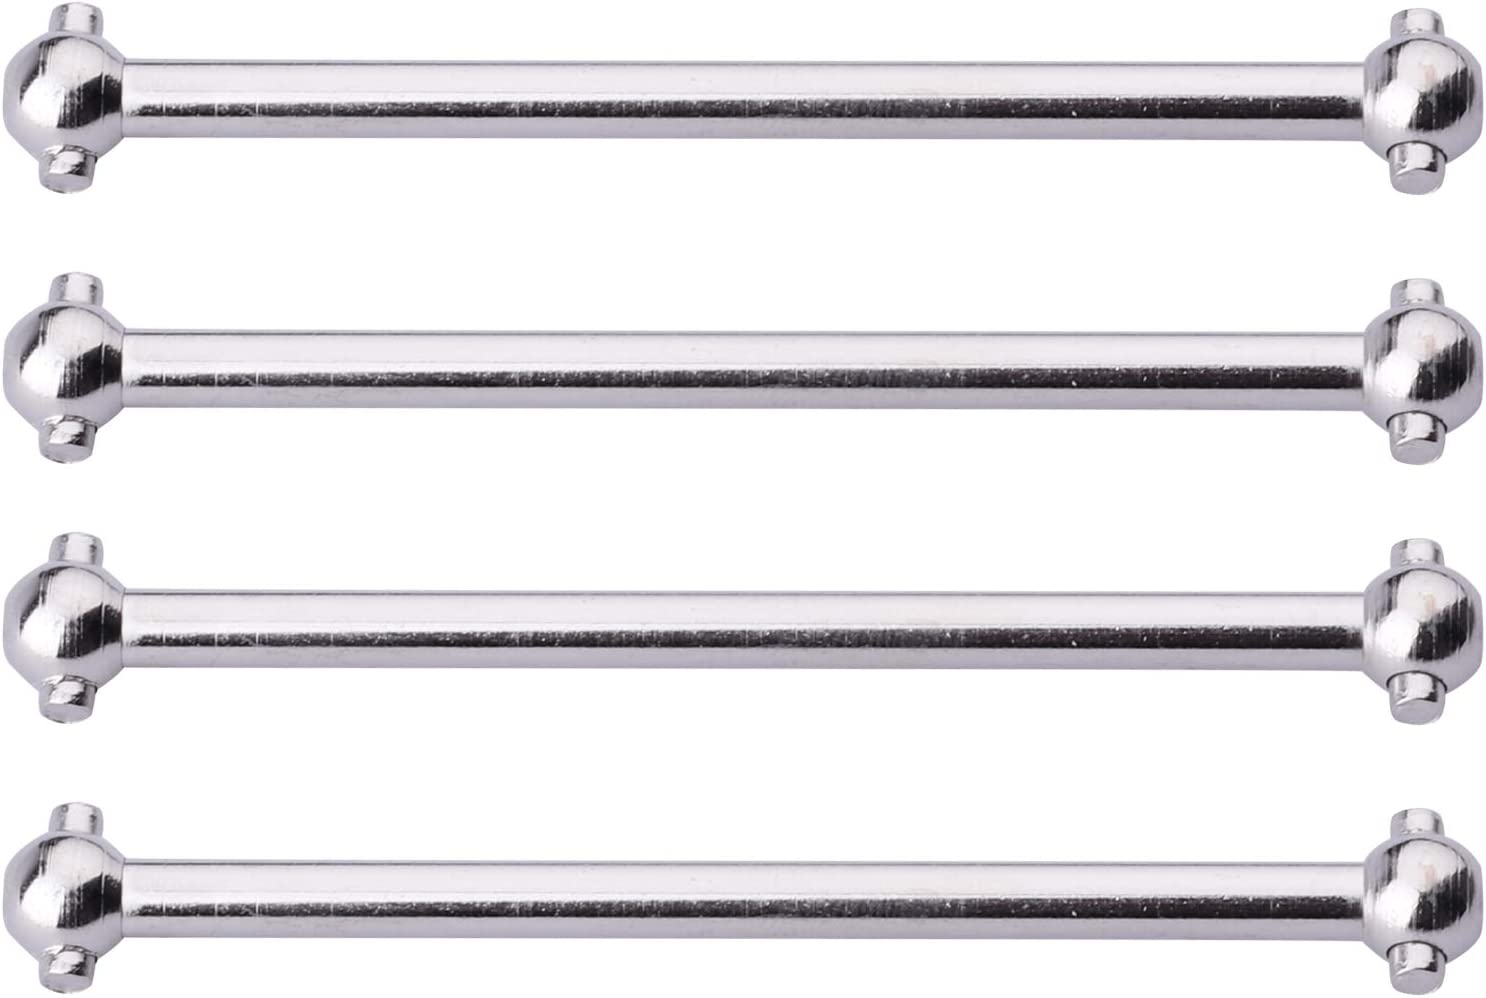 Hobbypark Steel Dogbones Drive Shafts 4-Pack Replace BS213-004 Pro Front /& Rear for 1//10 Redcat Blackout XTE XBE SC